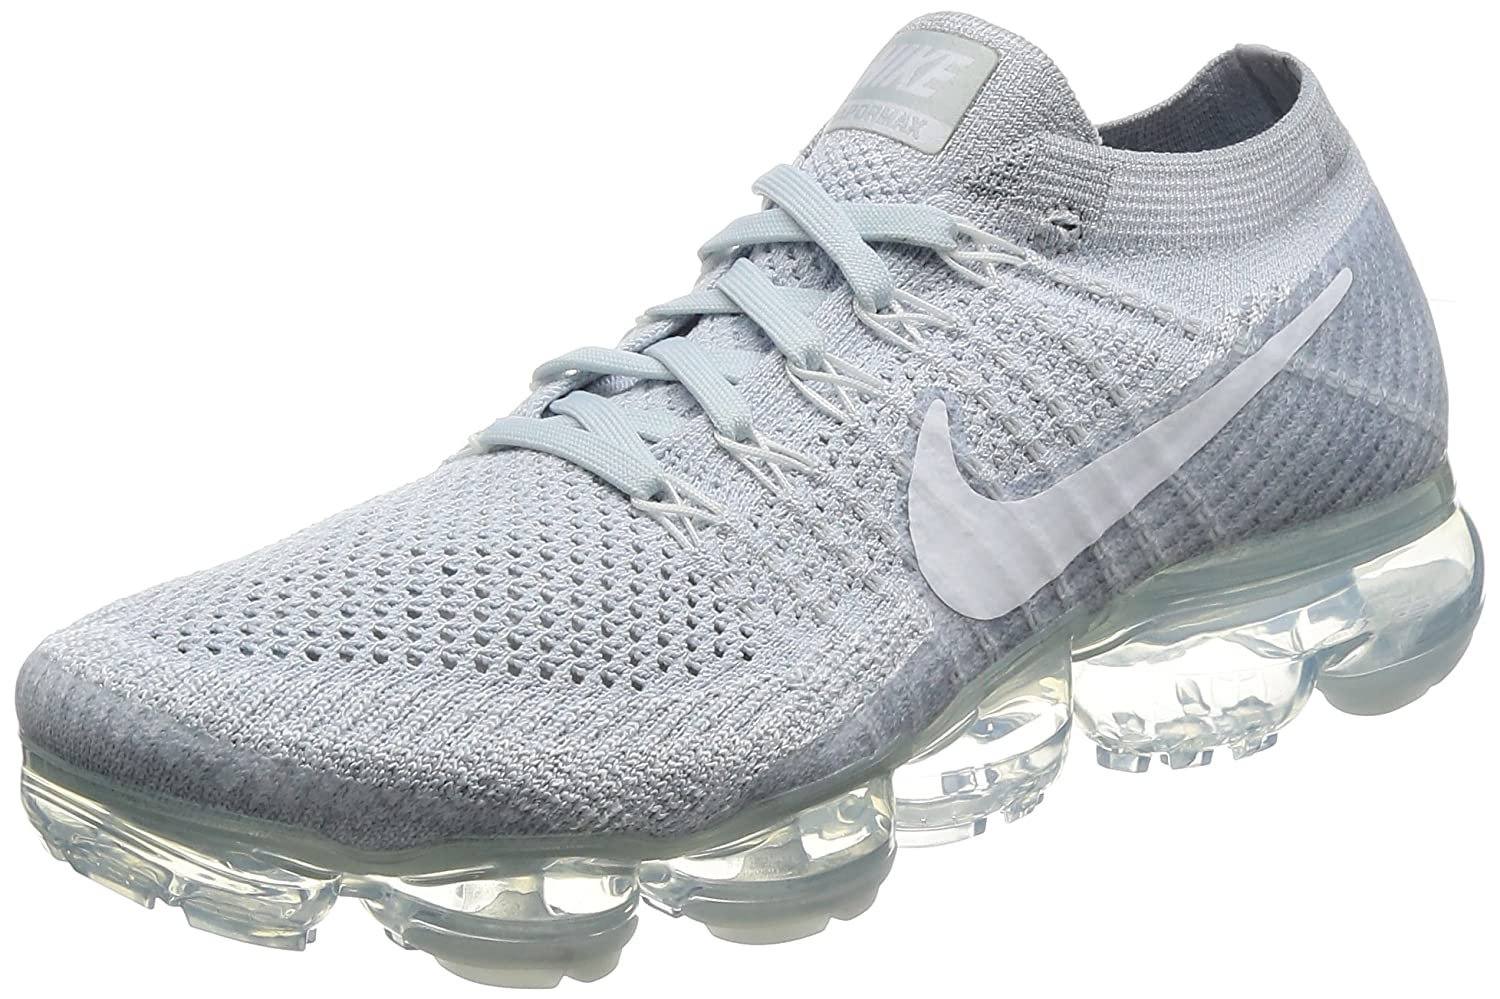 best cheap b5e14 5fa7e Amazon.com   Men s Nike Air Vapormax Flyknit Running Shoe   Fashion Sneakers